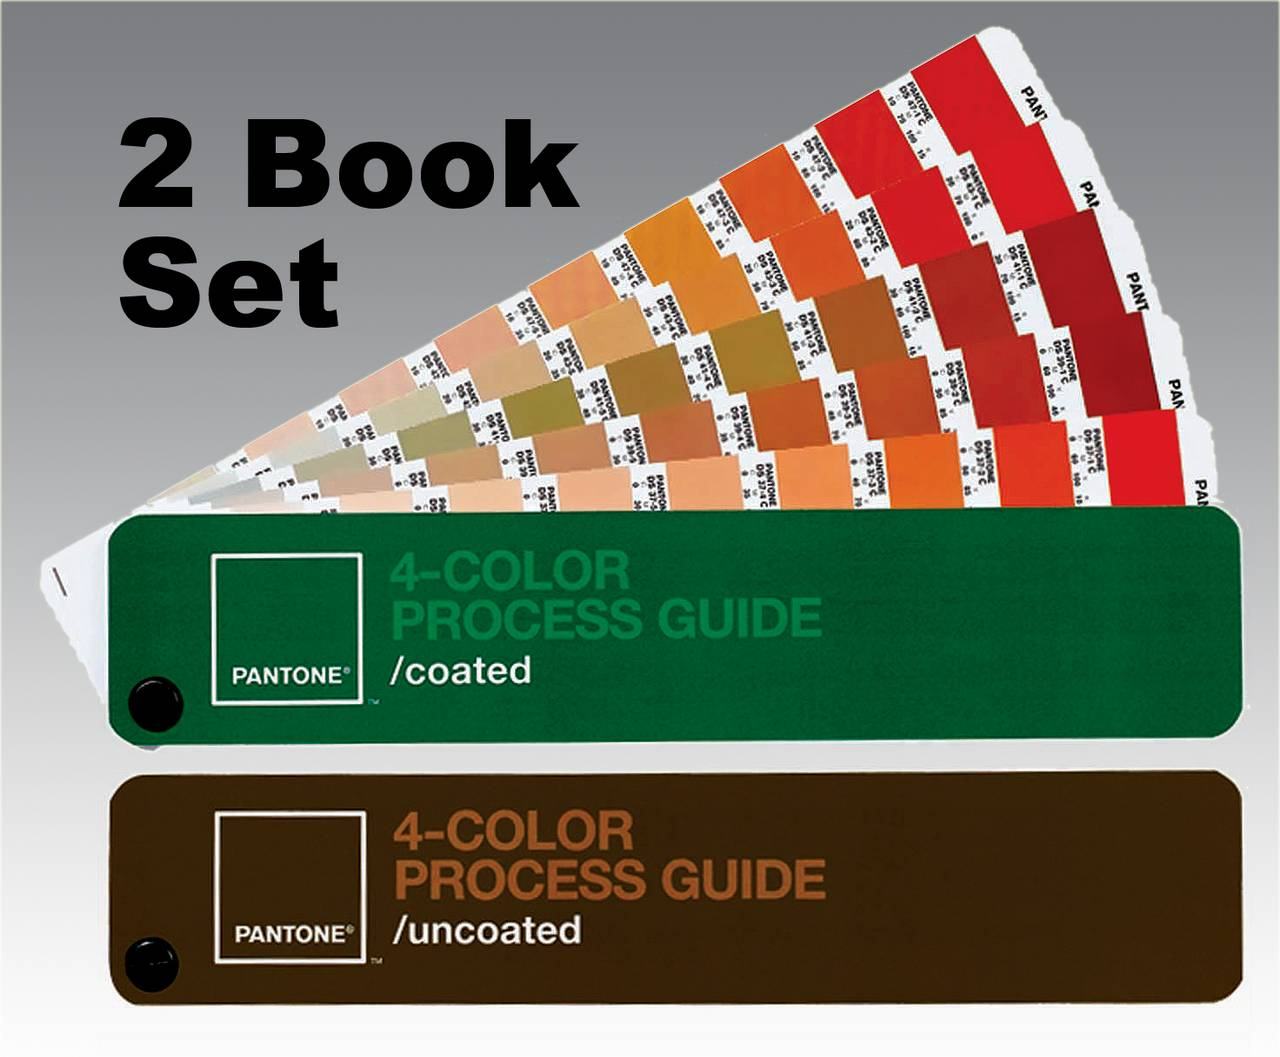 PANTONE CMYK PROCESS GUIDE 2 Book Set, Coated/Uncoated